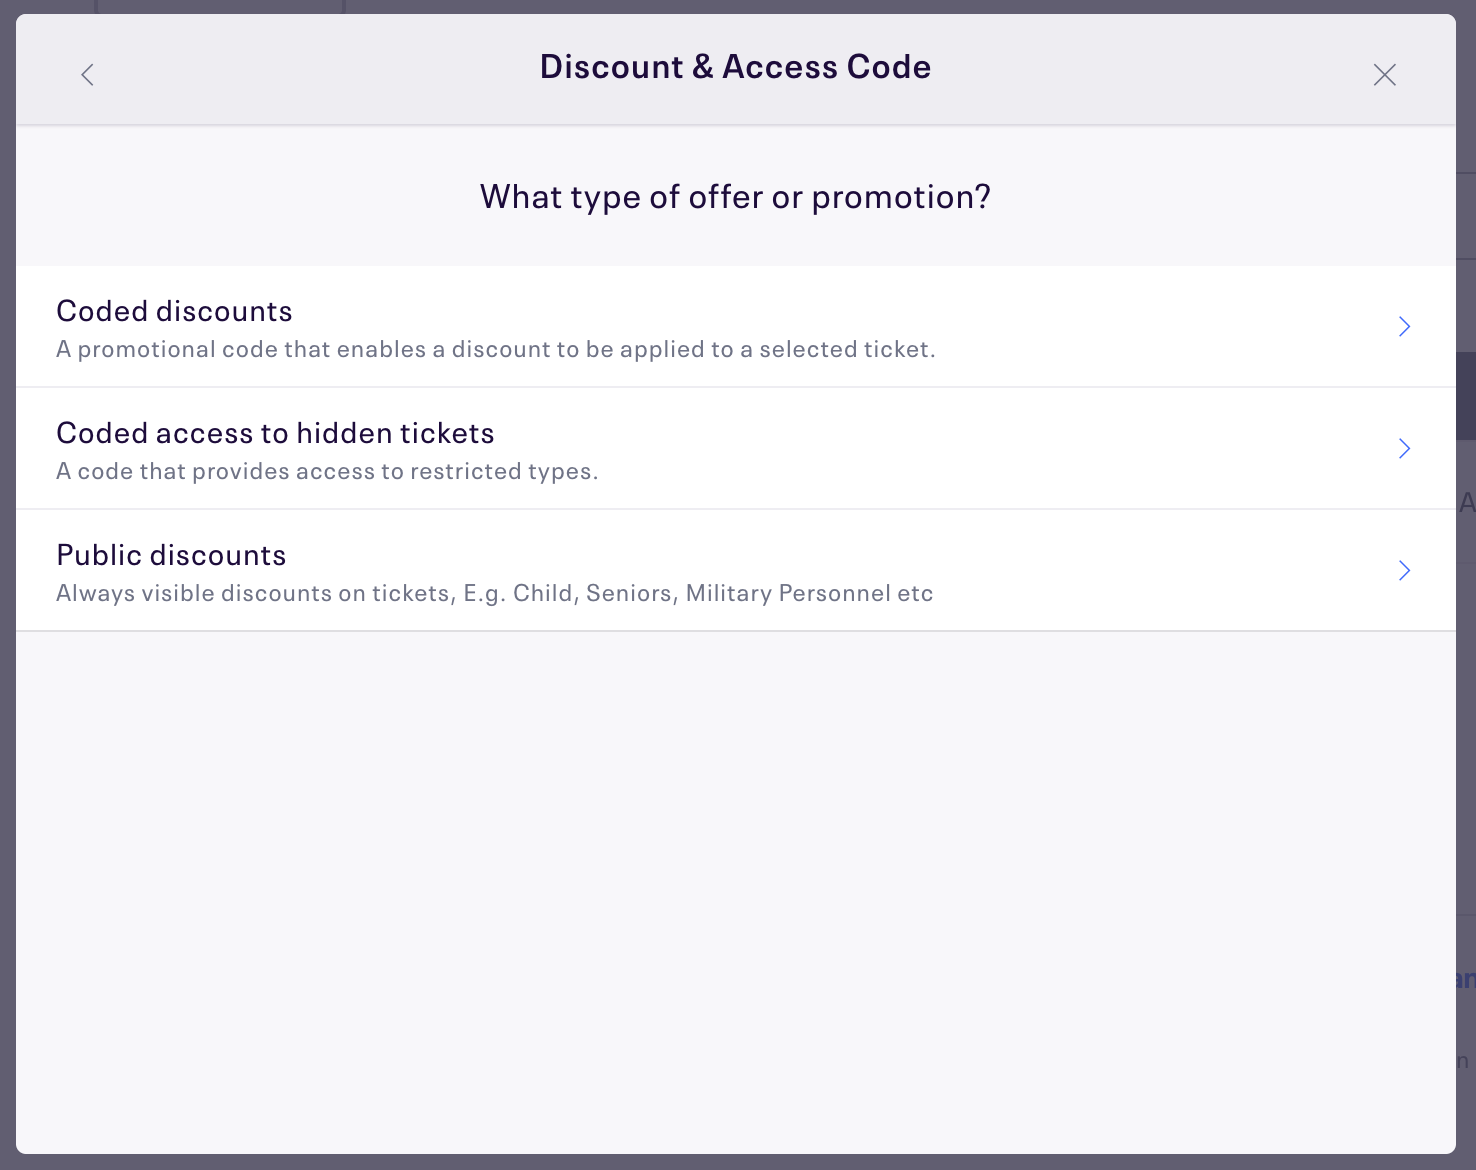 "Coded discounts is the first option under, ""What type of offer or promotion?"""